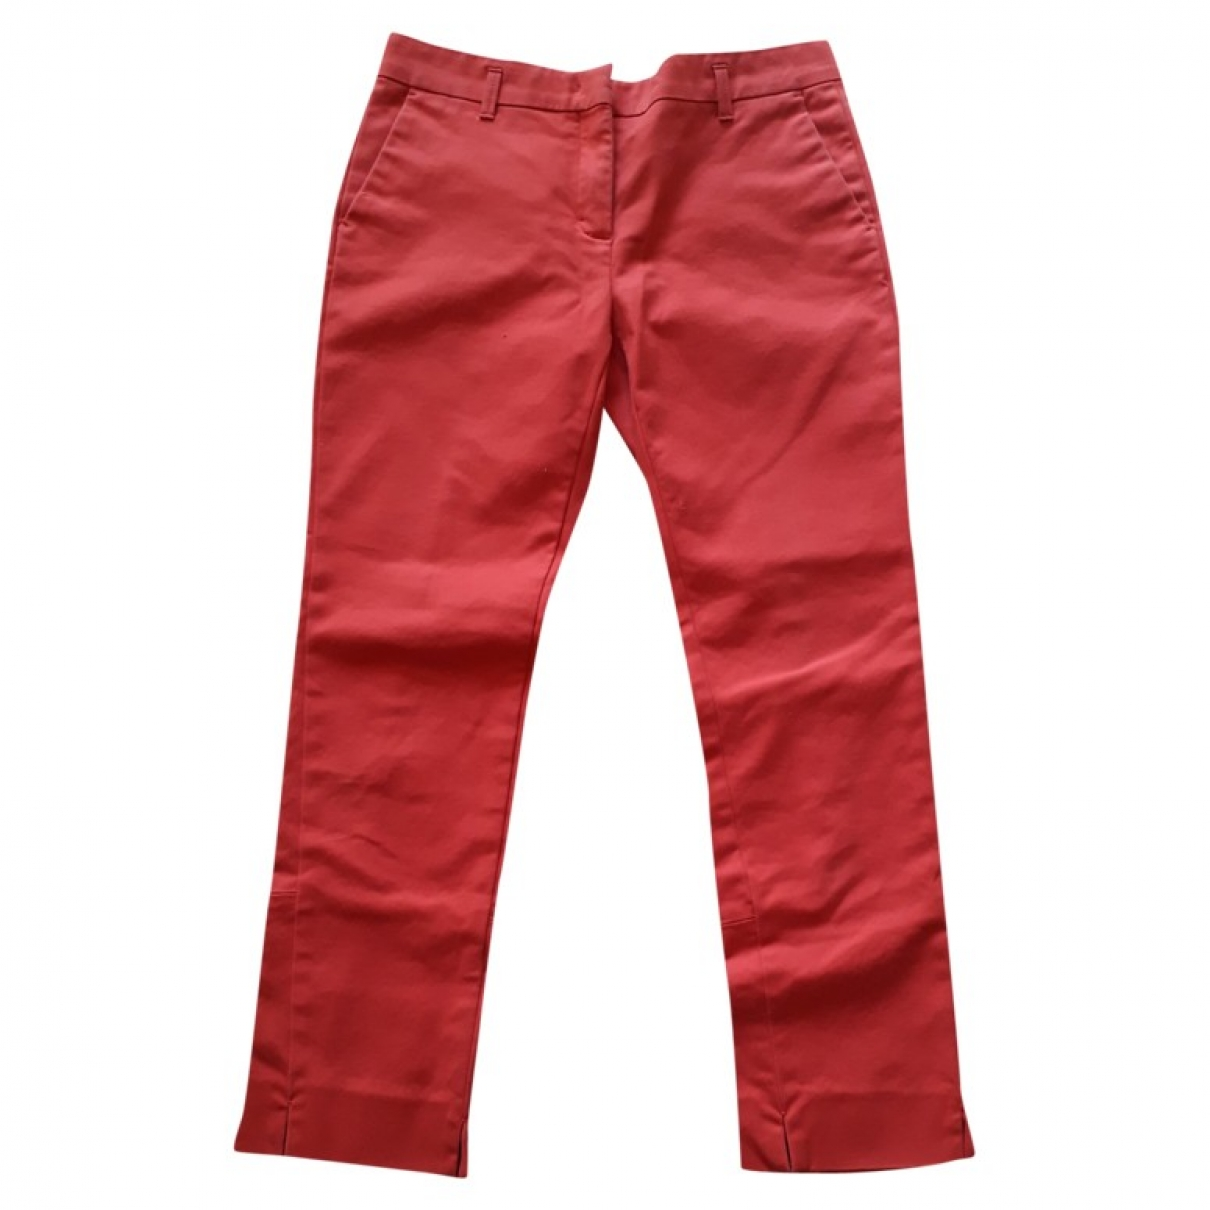 Dorothee Schumacher \N Red Cotton Trousers for Women XS International